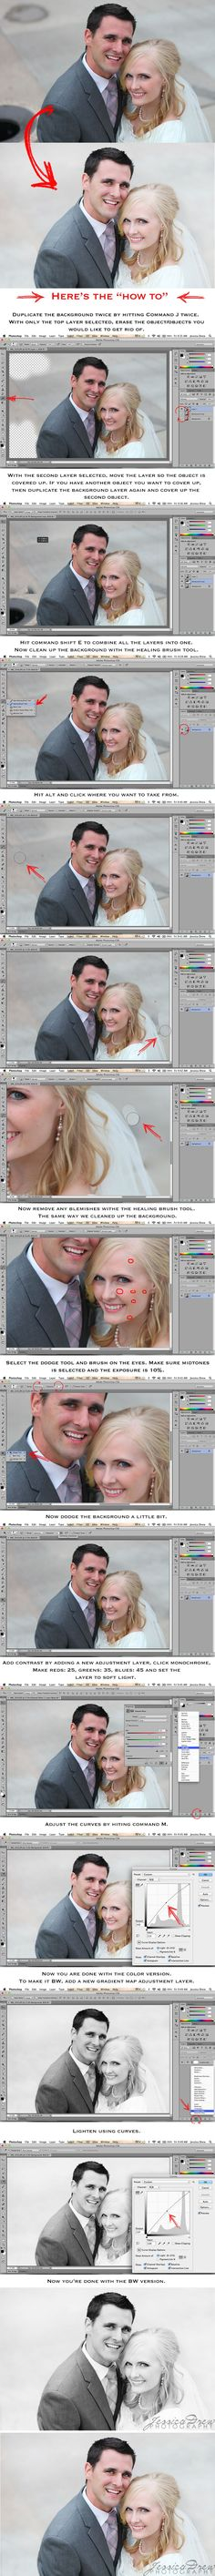 Remove objects from the background of your photo in CS6